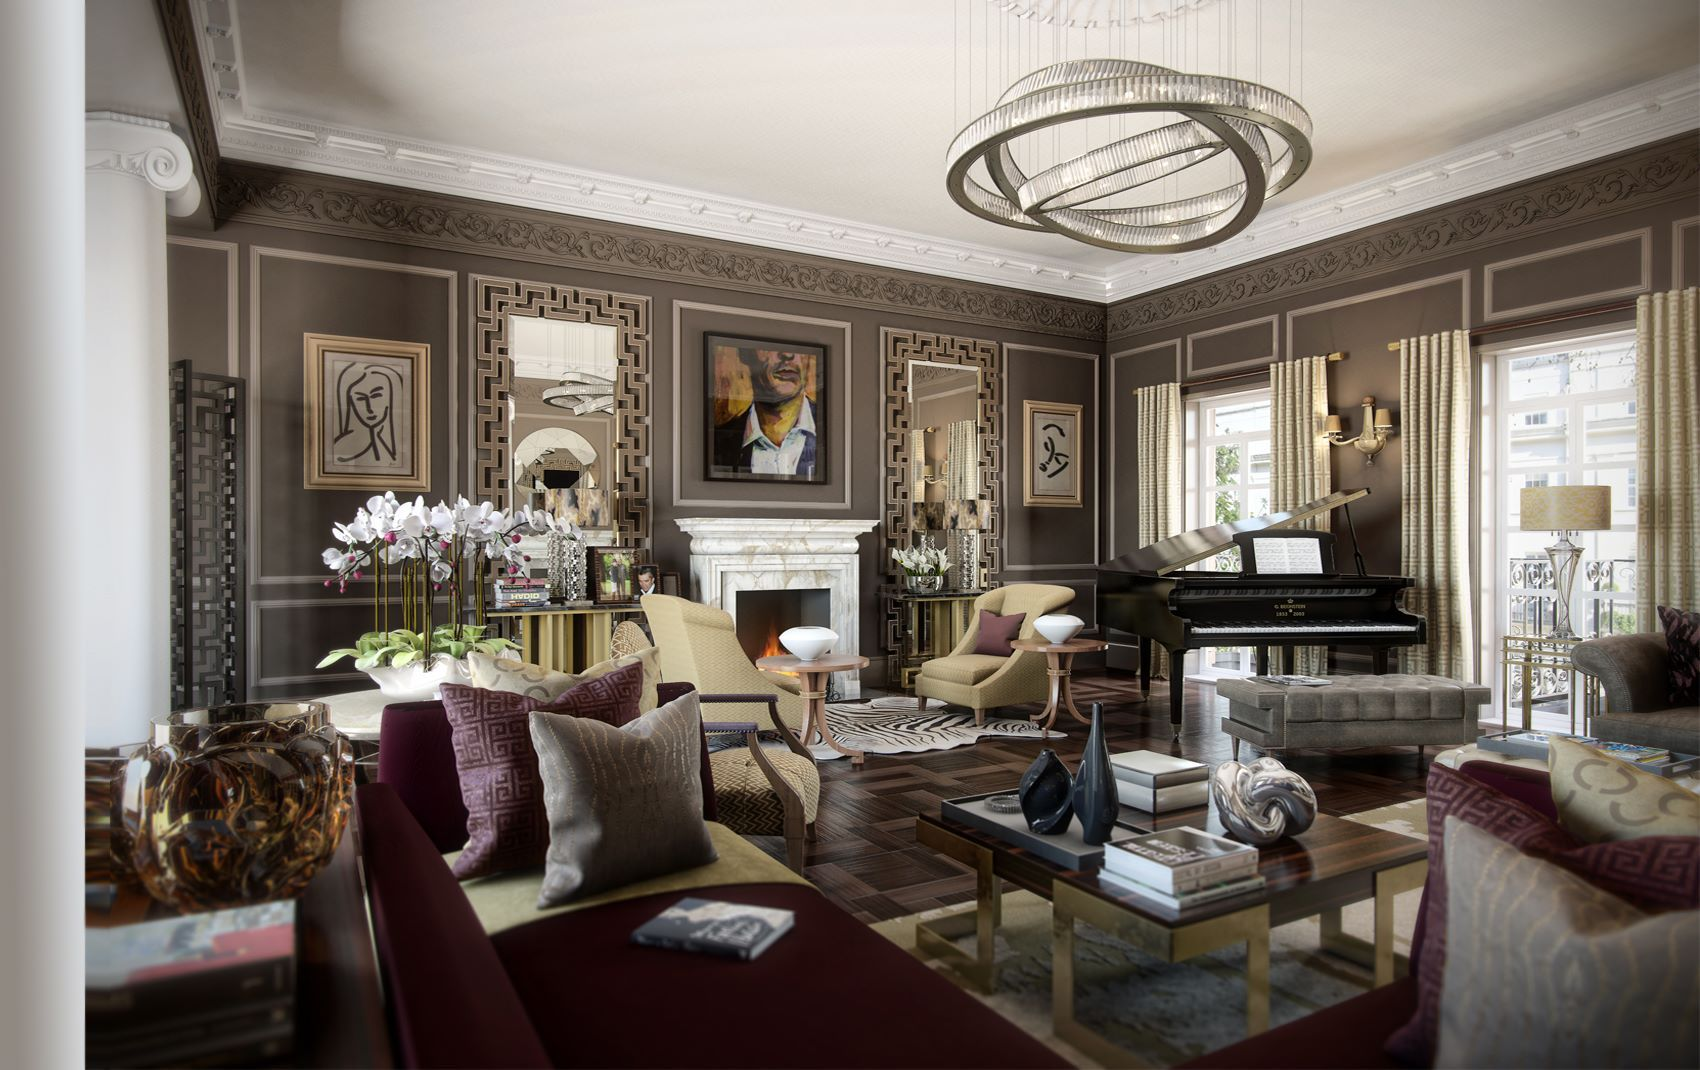 Ren dekker design london high end luxury exclusive for Exclusive interior designs